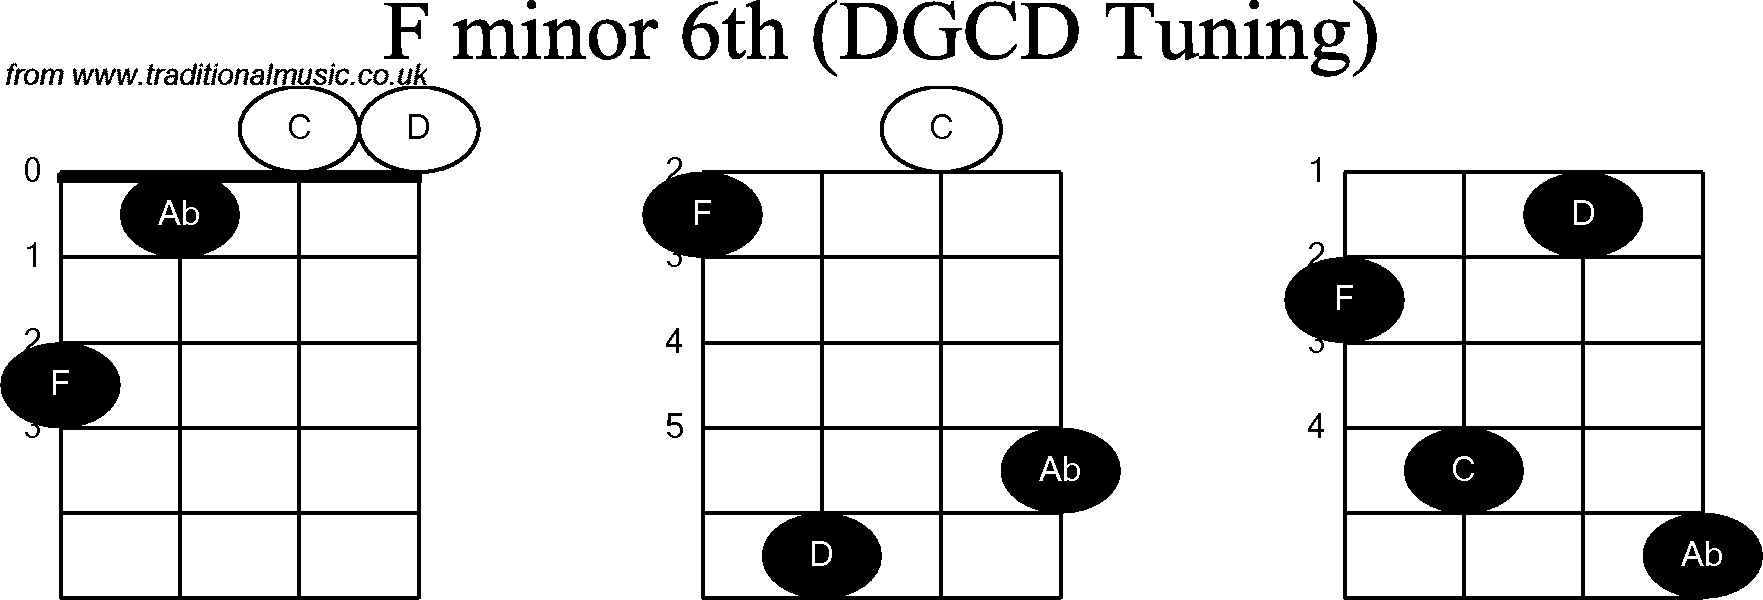 Chord diagrams for: Banjo(G Modal) F Minor6th